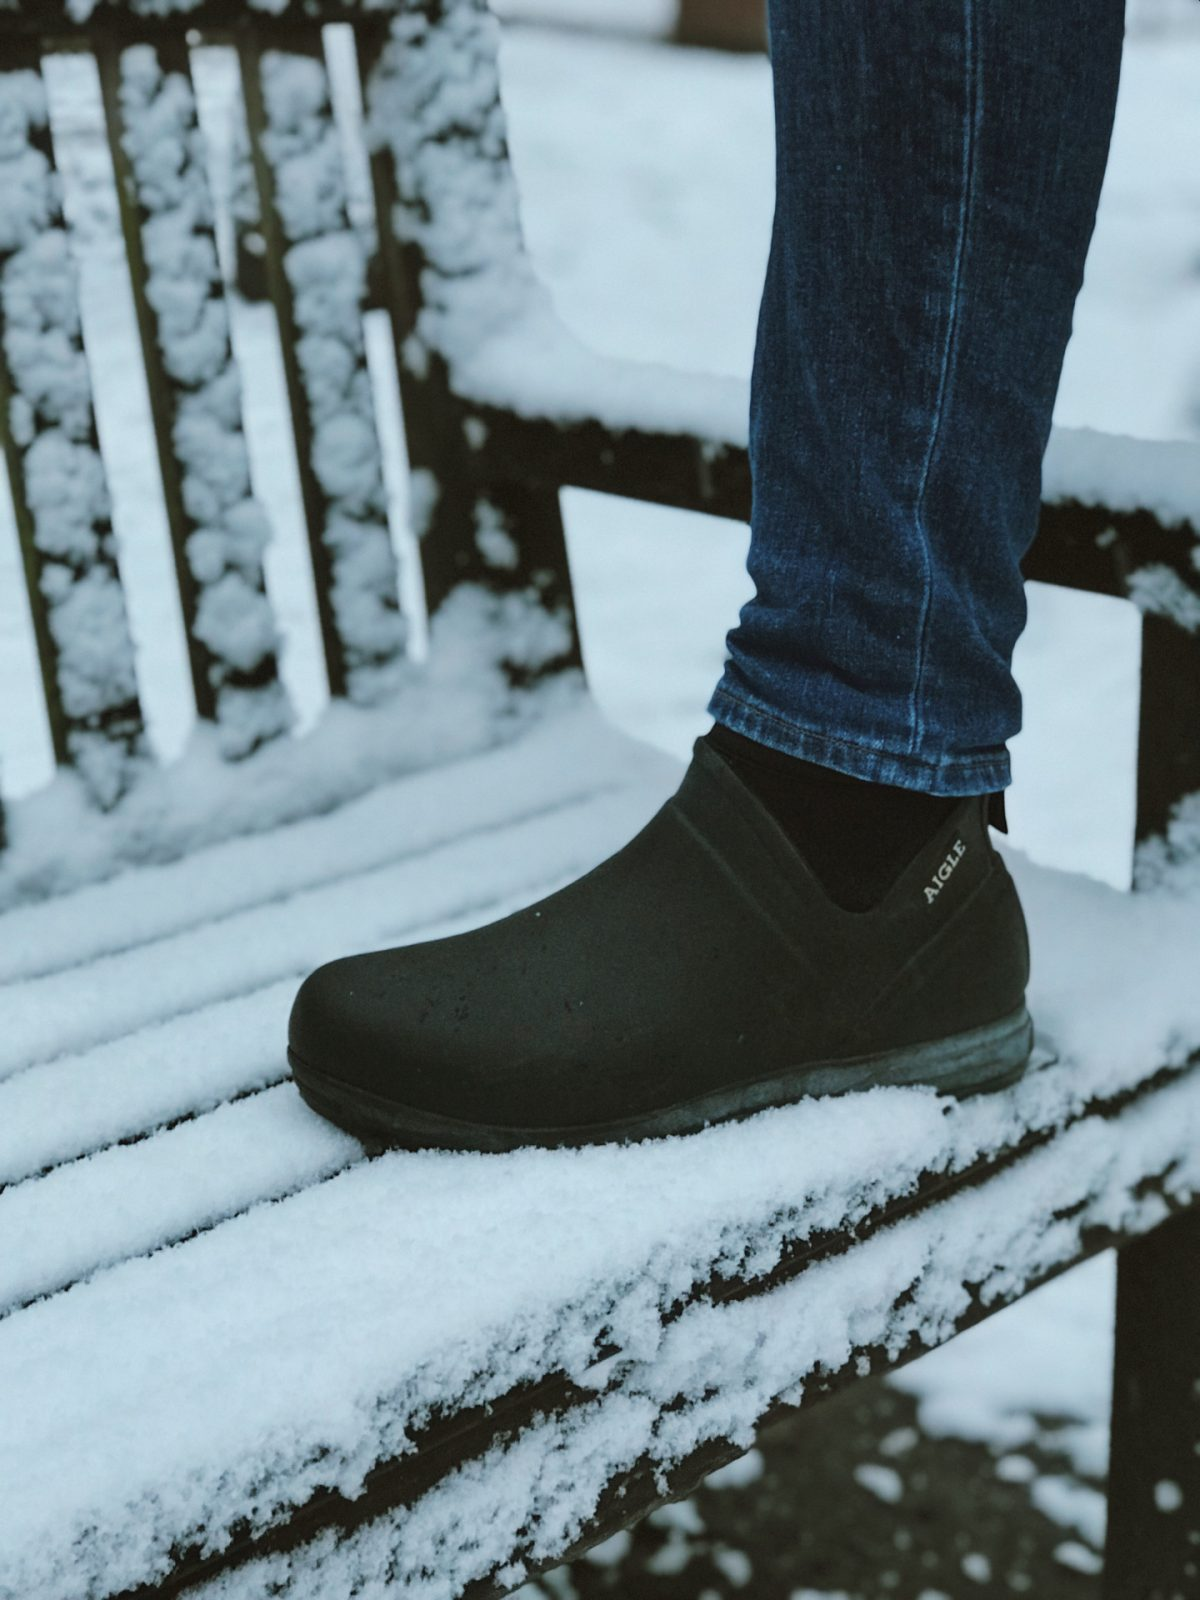 Black waterproof gumboots on a bench covered in snow